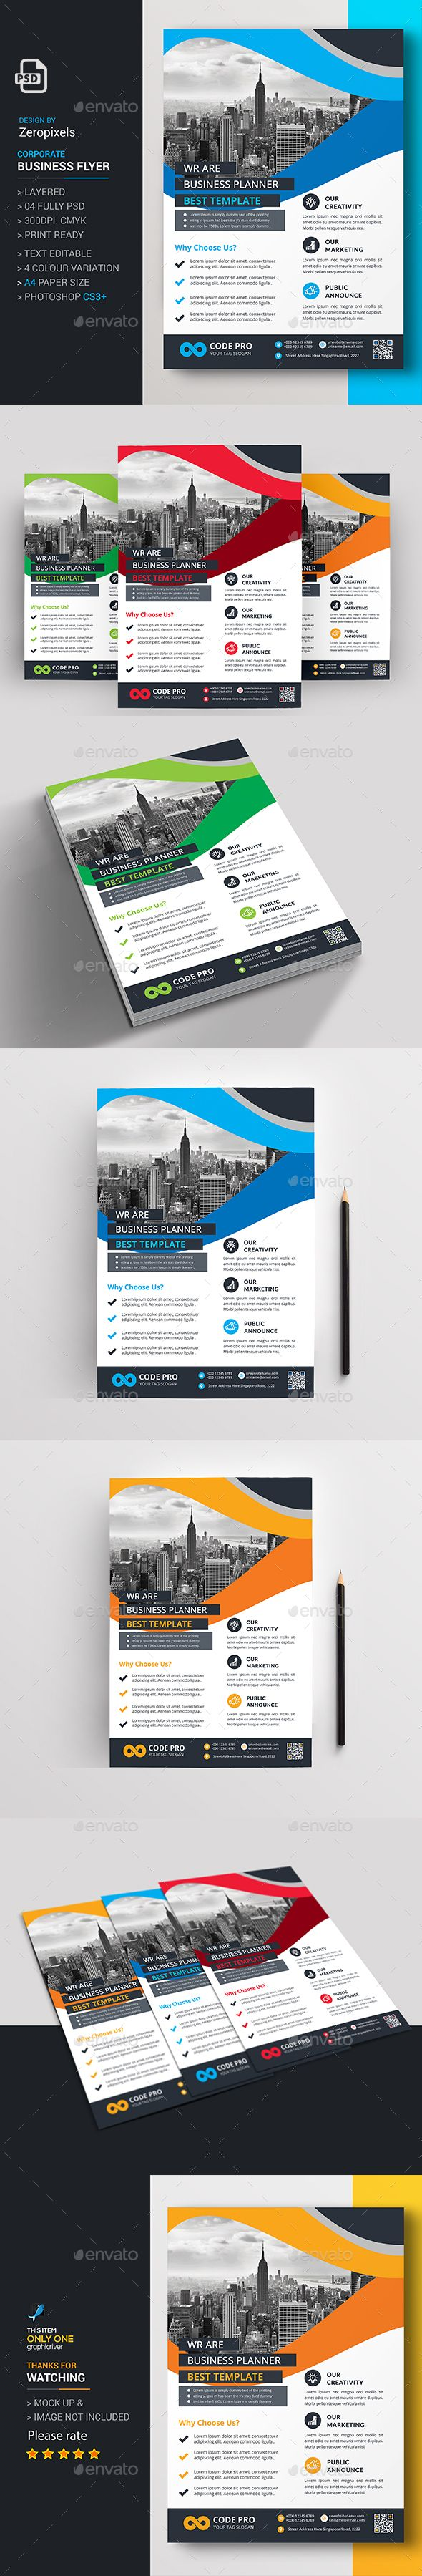 Poster design rates - Corporate Flyer Design Template Psd Download Here Http Graphicriver Net